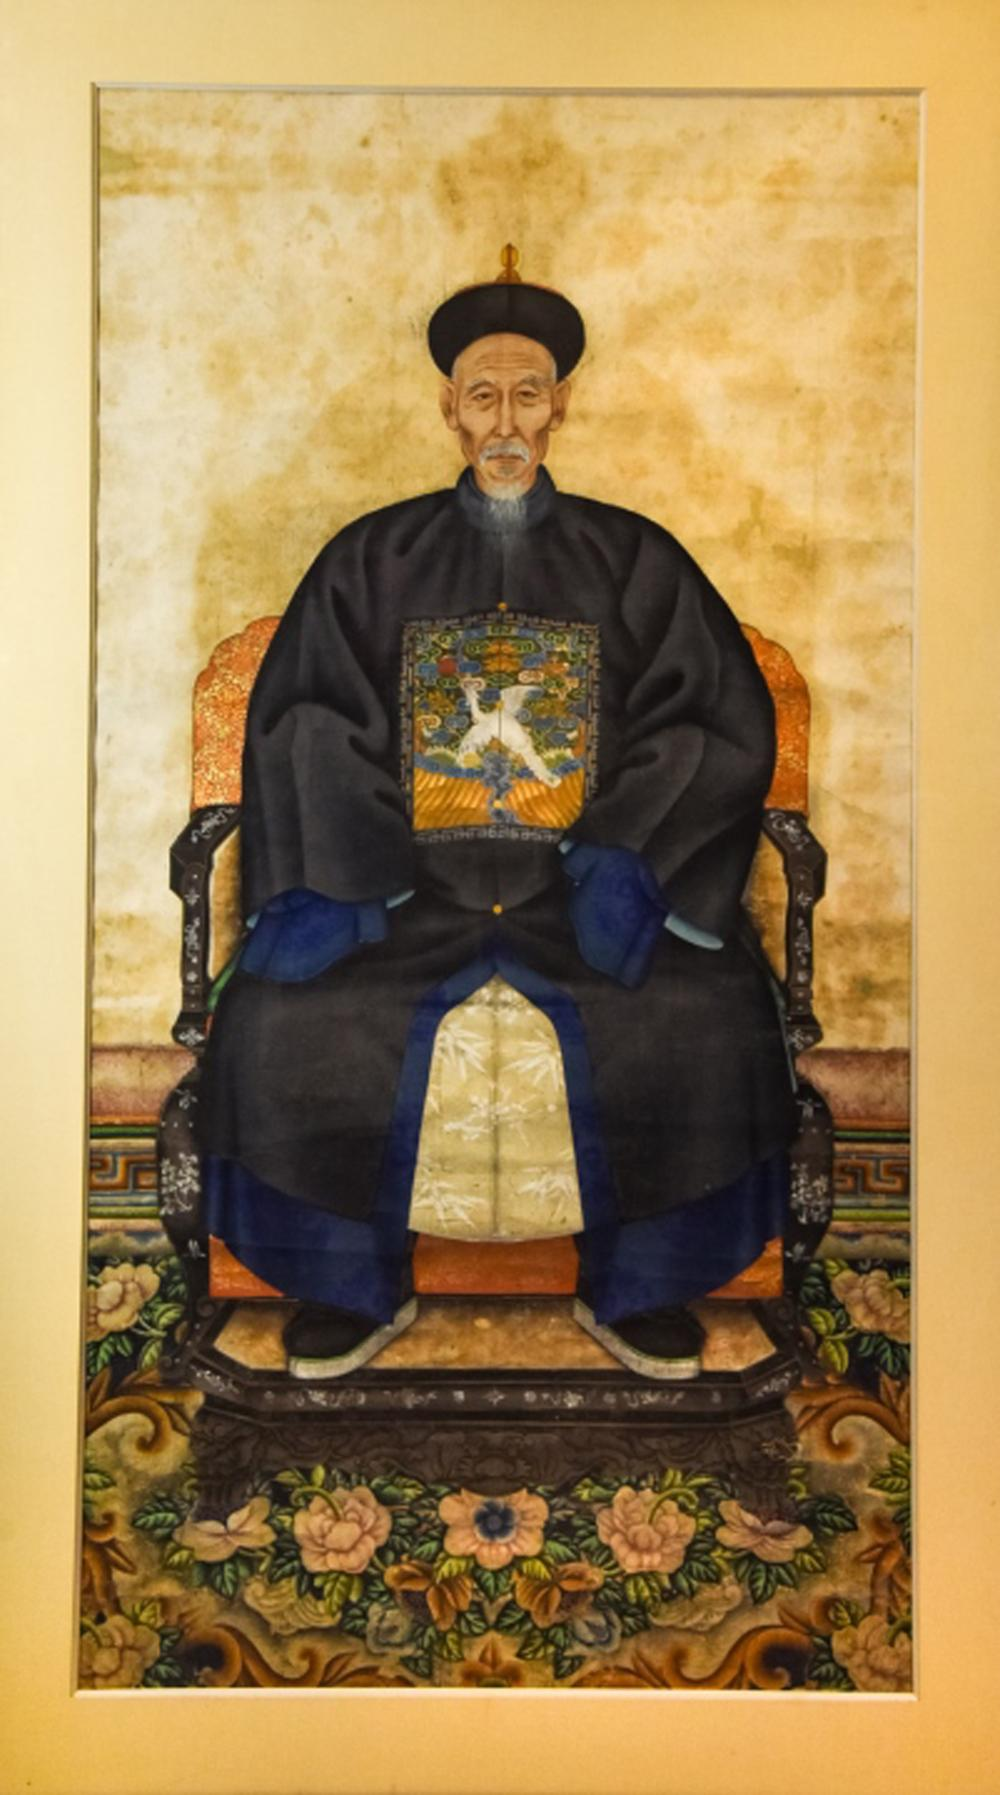 Chinese Qing Dynasty Ancestor Portrait Painting